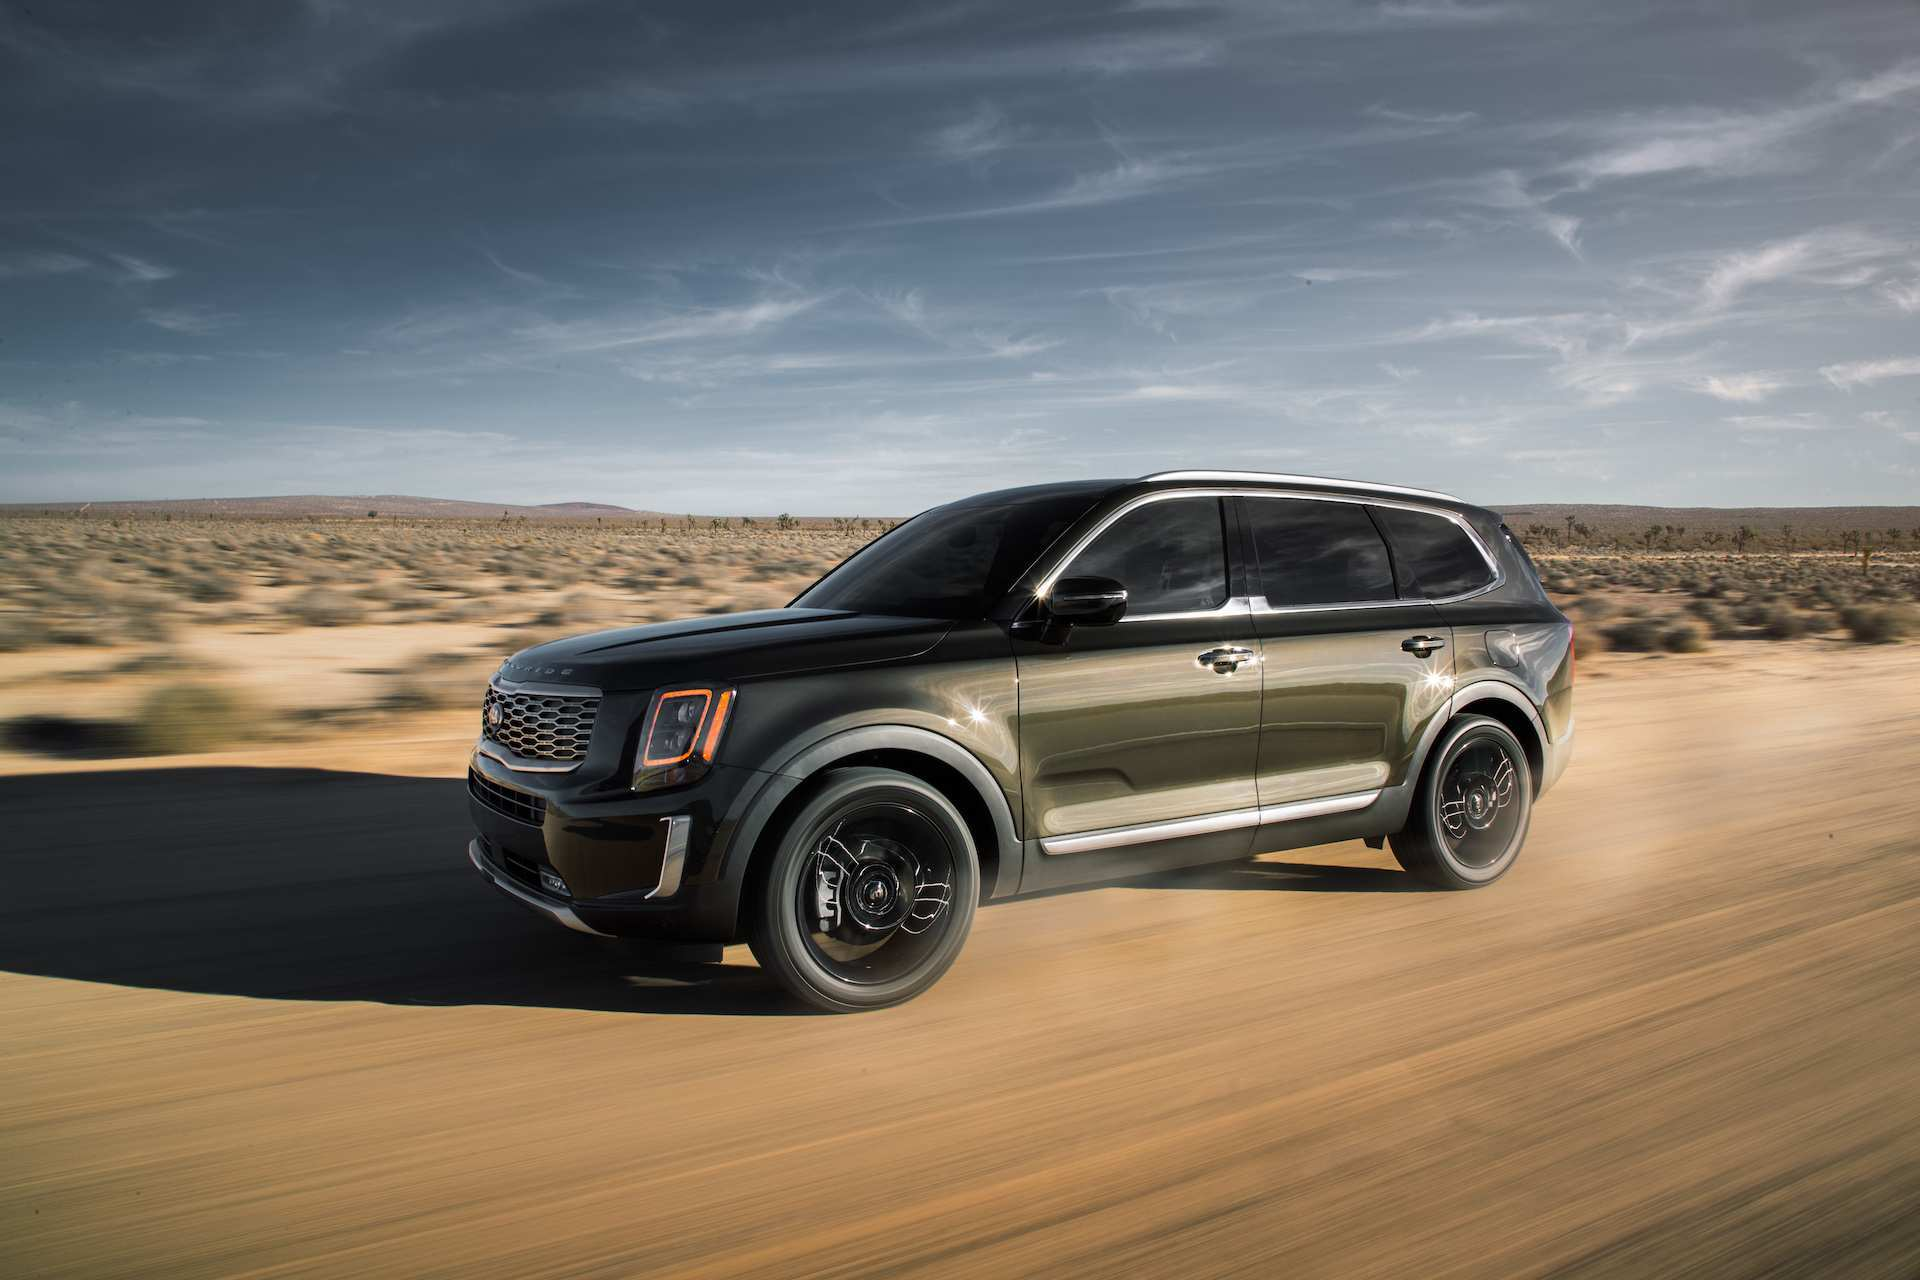 60 Great 2020 Kia Telluride Review Specs by 2020 Kia Telluride Review